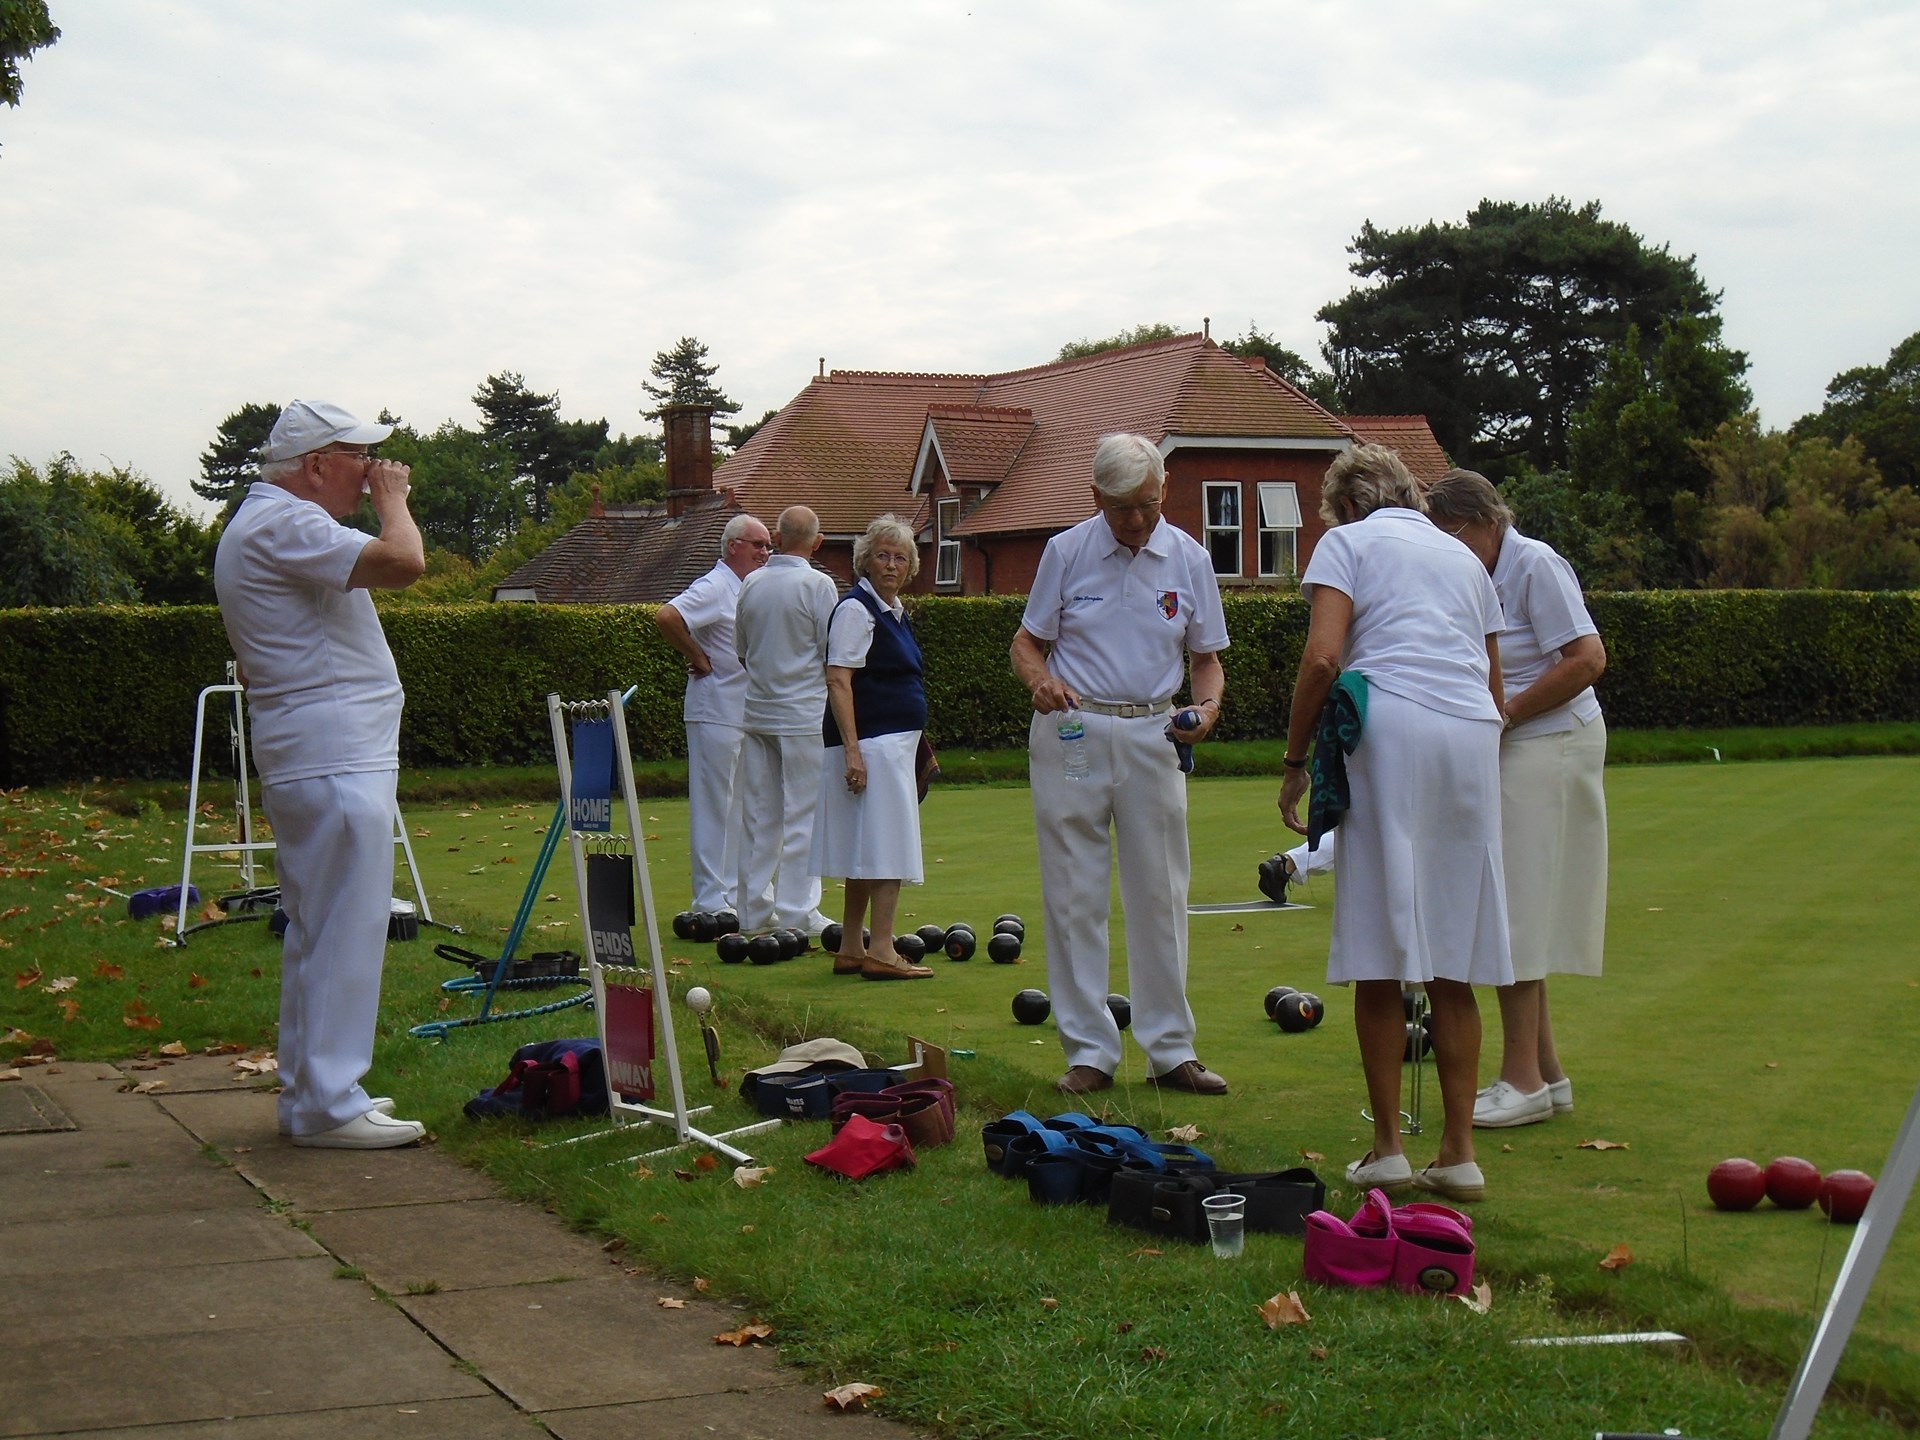 Bedford Bowling Club Fixtures/Leagues